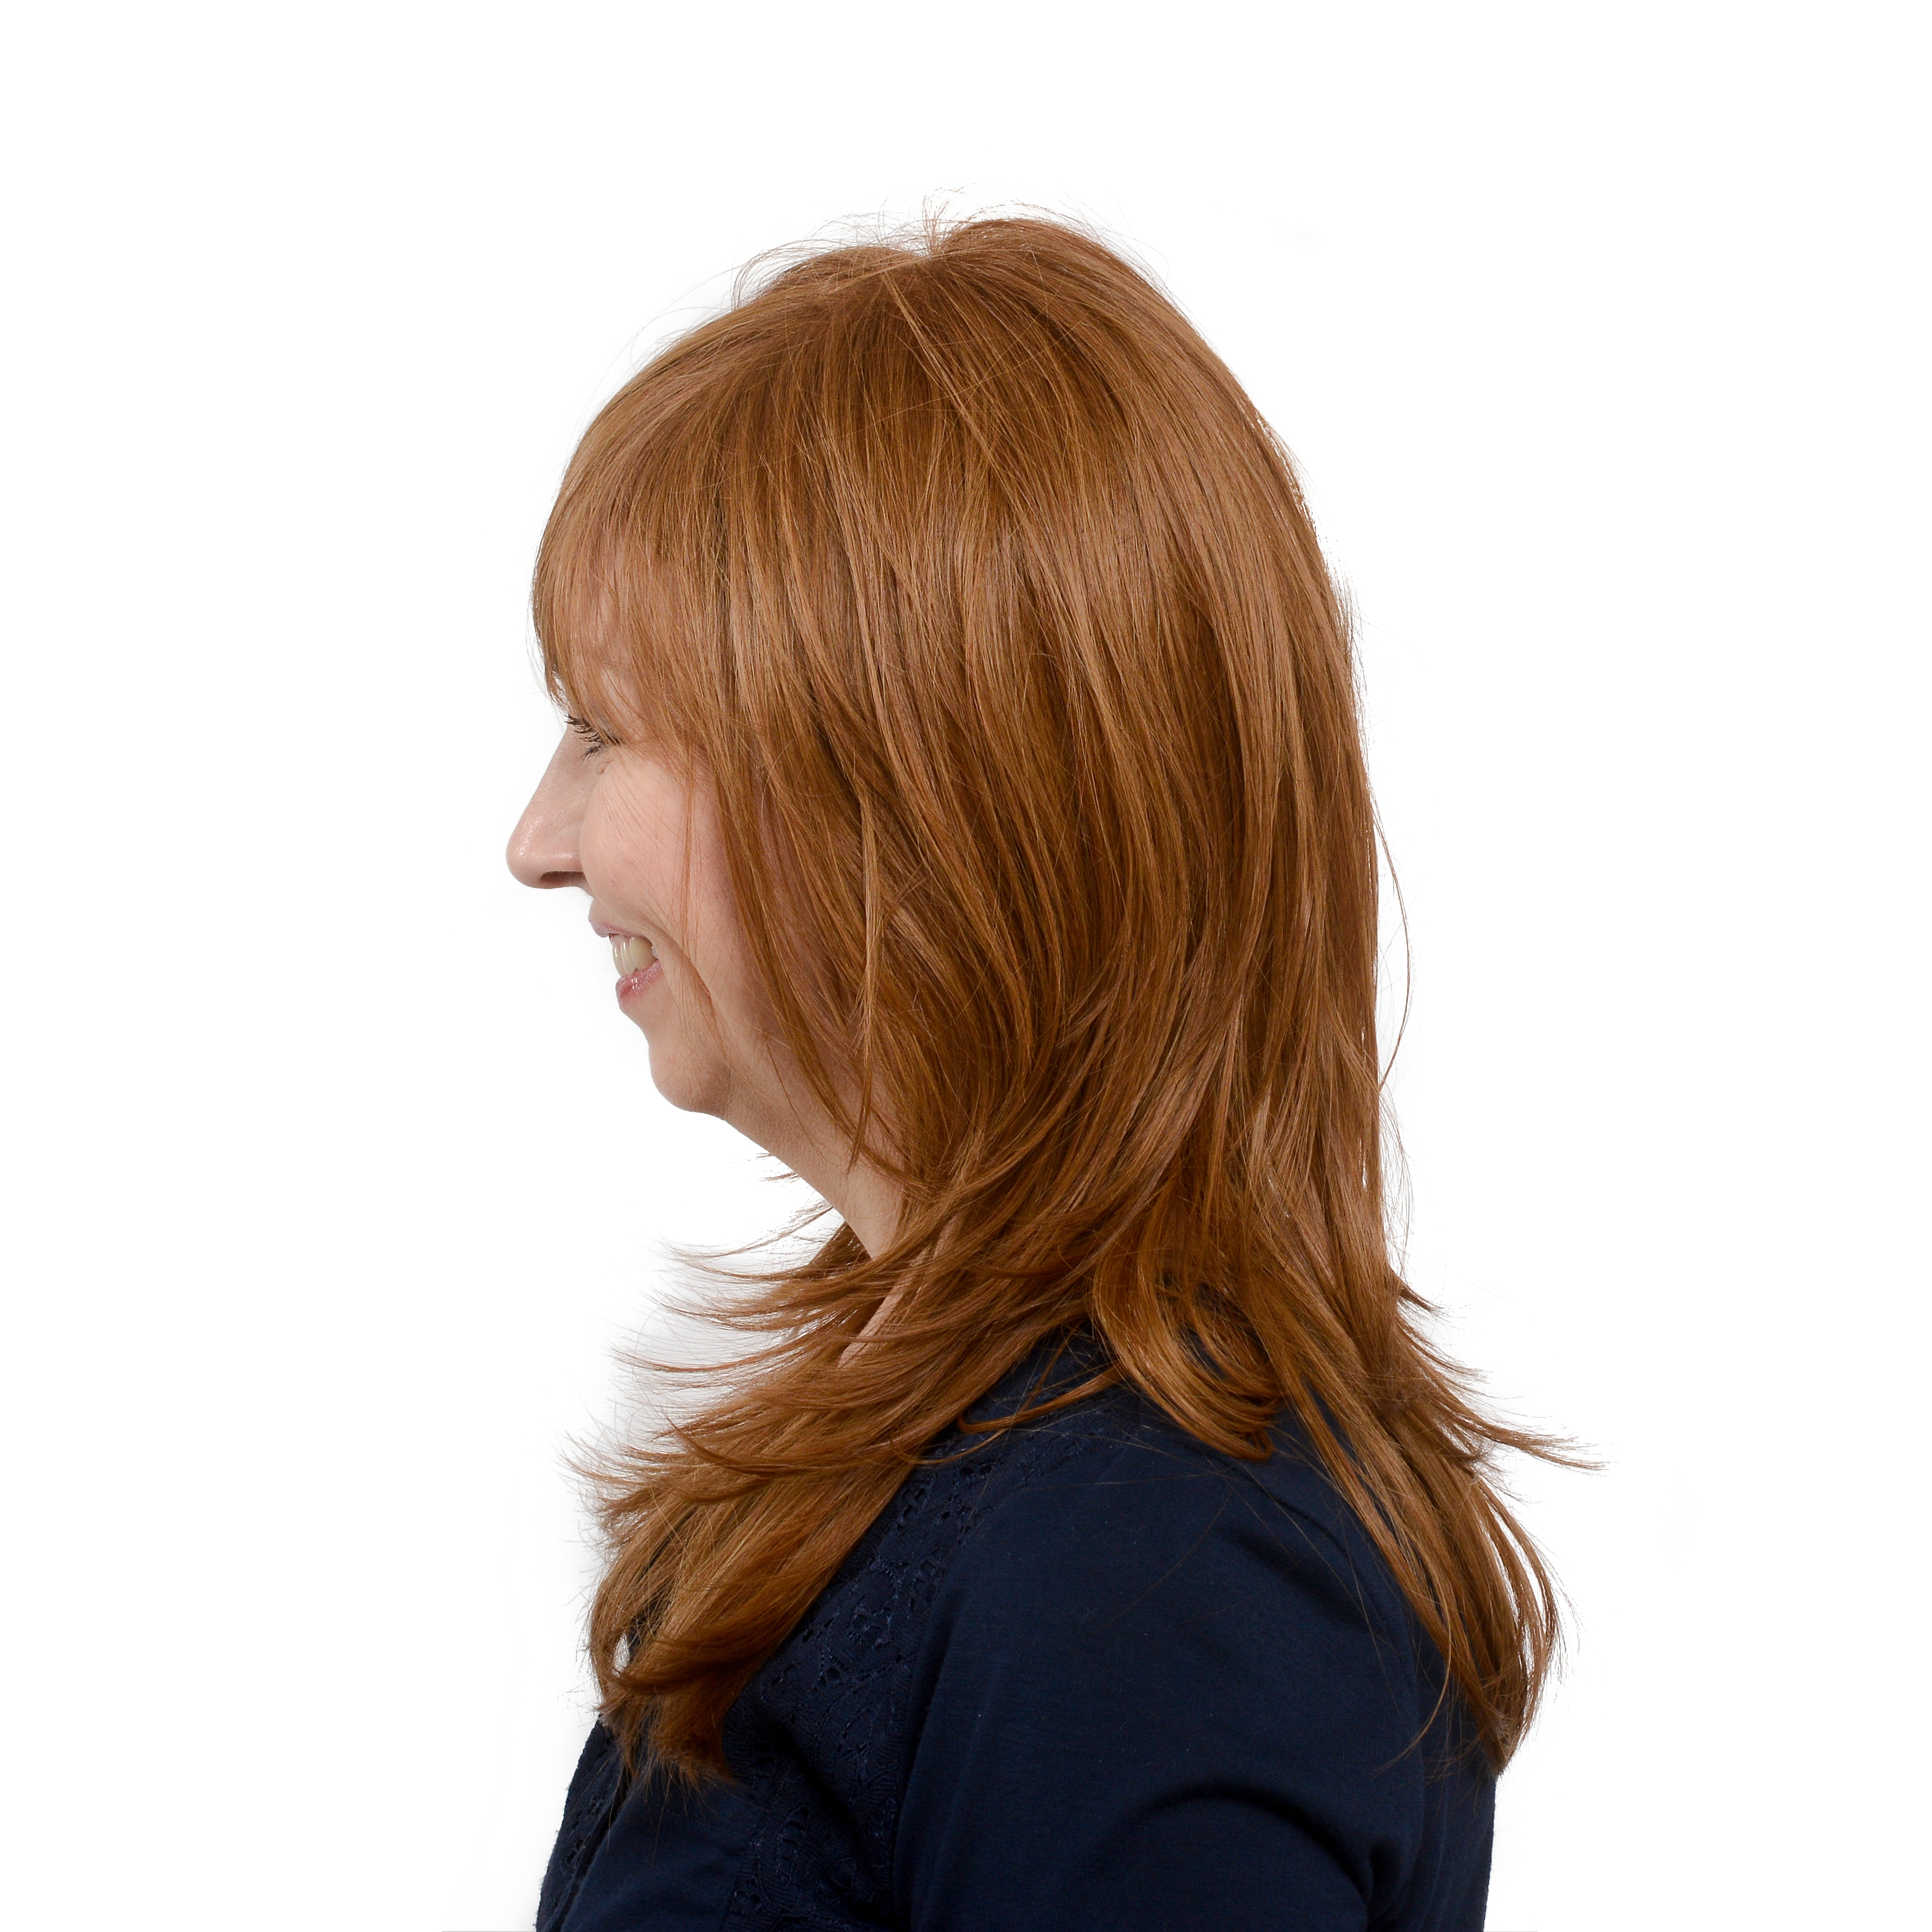 Light Shop Near Auburn: Easy Wear Hair Femme Fatale Wig - Light Auburn